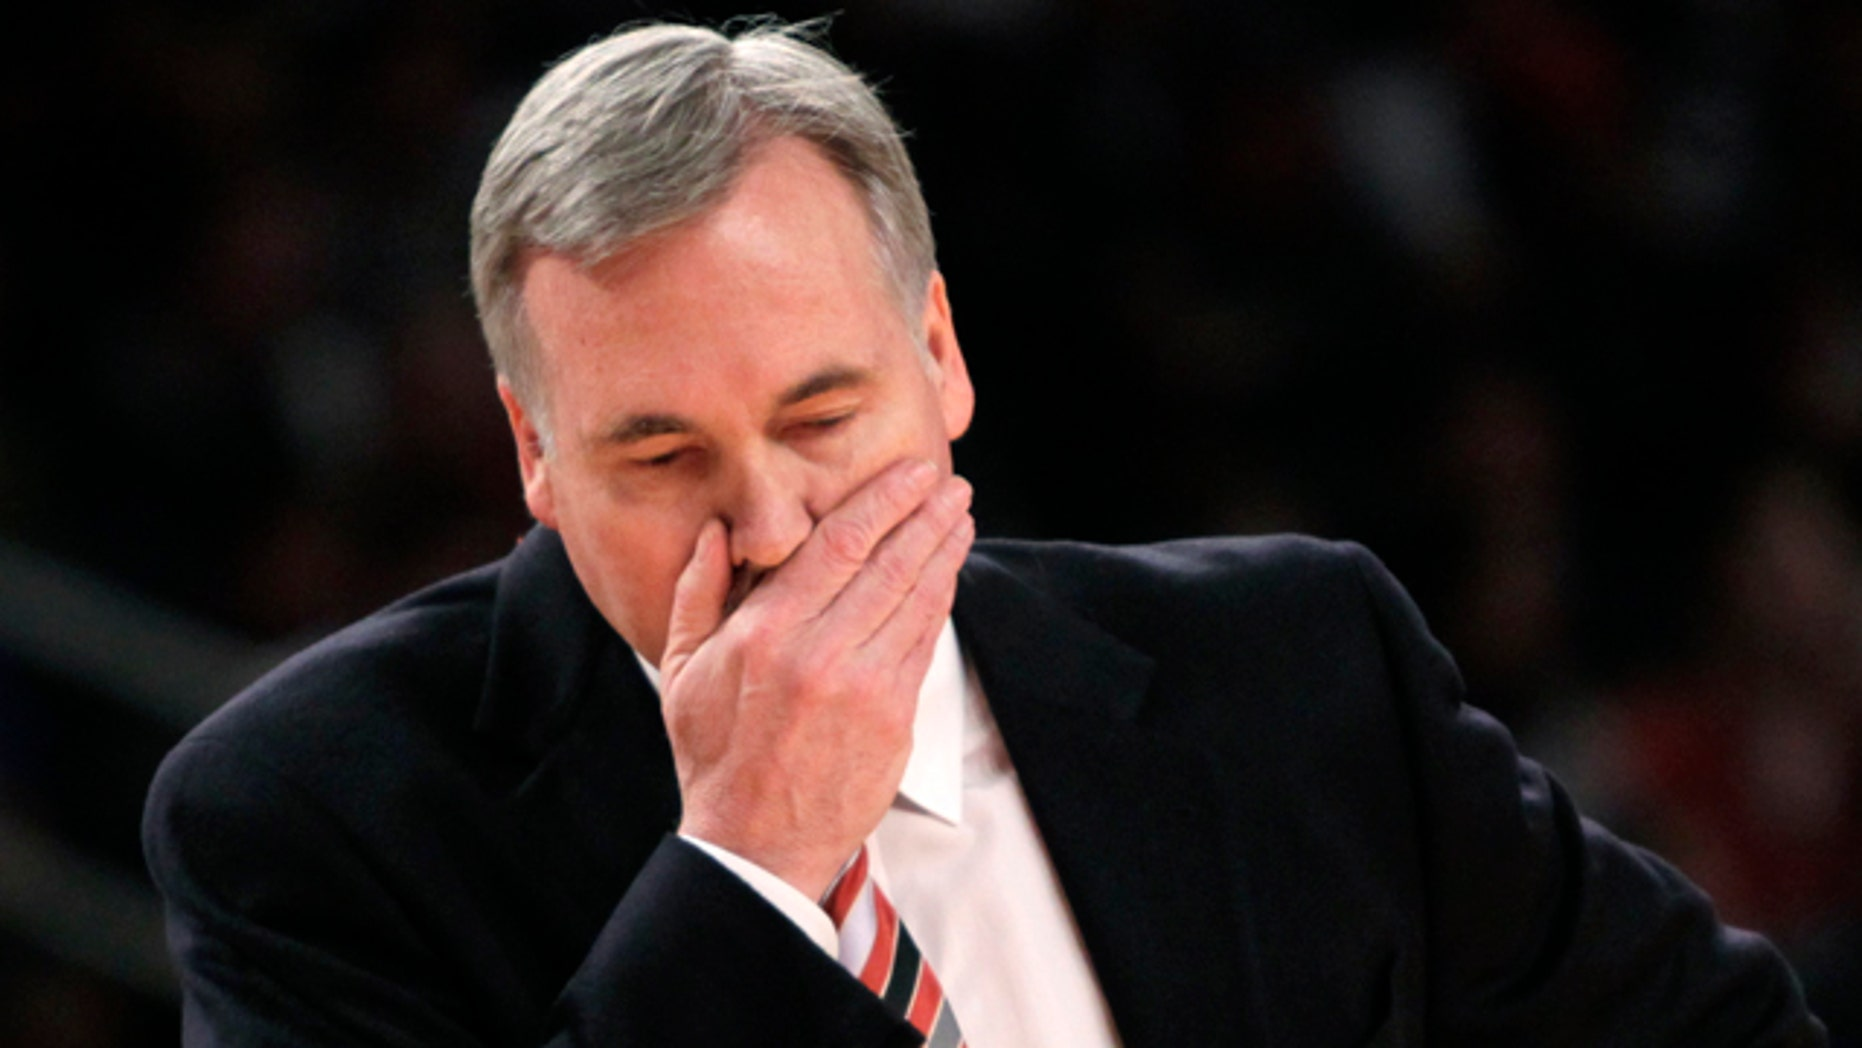 New York Knicks' head coach Mike D'Antoni walks onto the court during a time out during the first half of an NBA basketball game against the Philadelphia 76ers in New York, Sunday, March 11, 2012. The 76ers defeated the Knicks 106-94. (AP Photo/Seth Wenig)